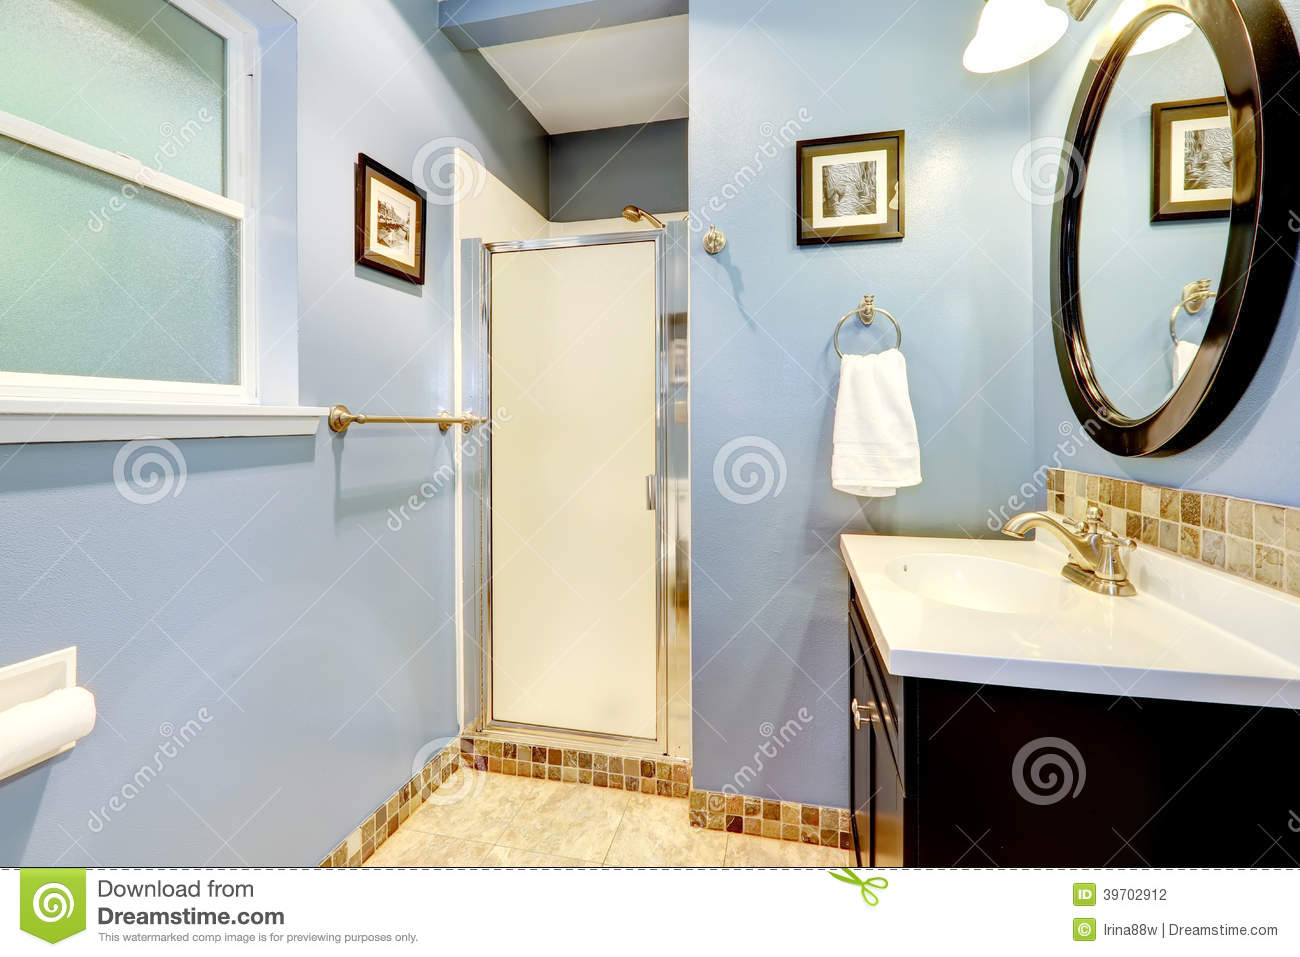 Light Blue Bathroom With Tile Trim Stock Photo - Image of real ...